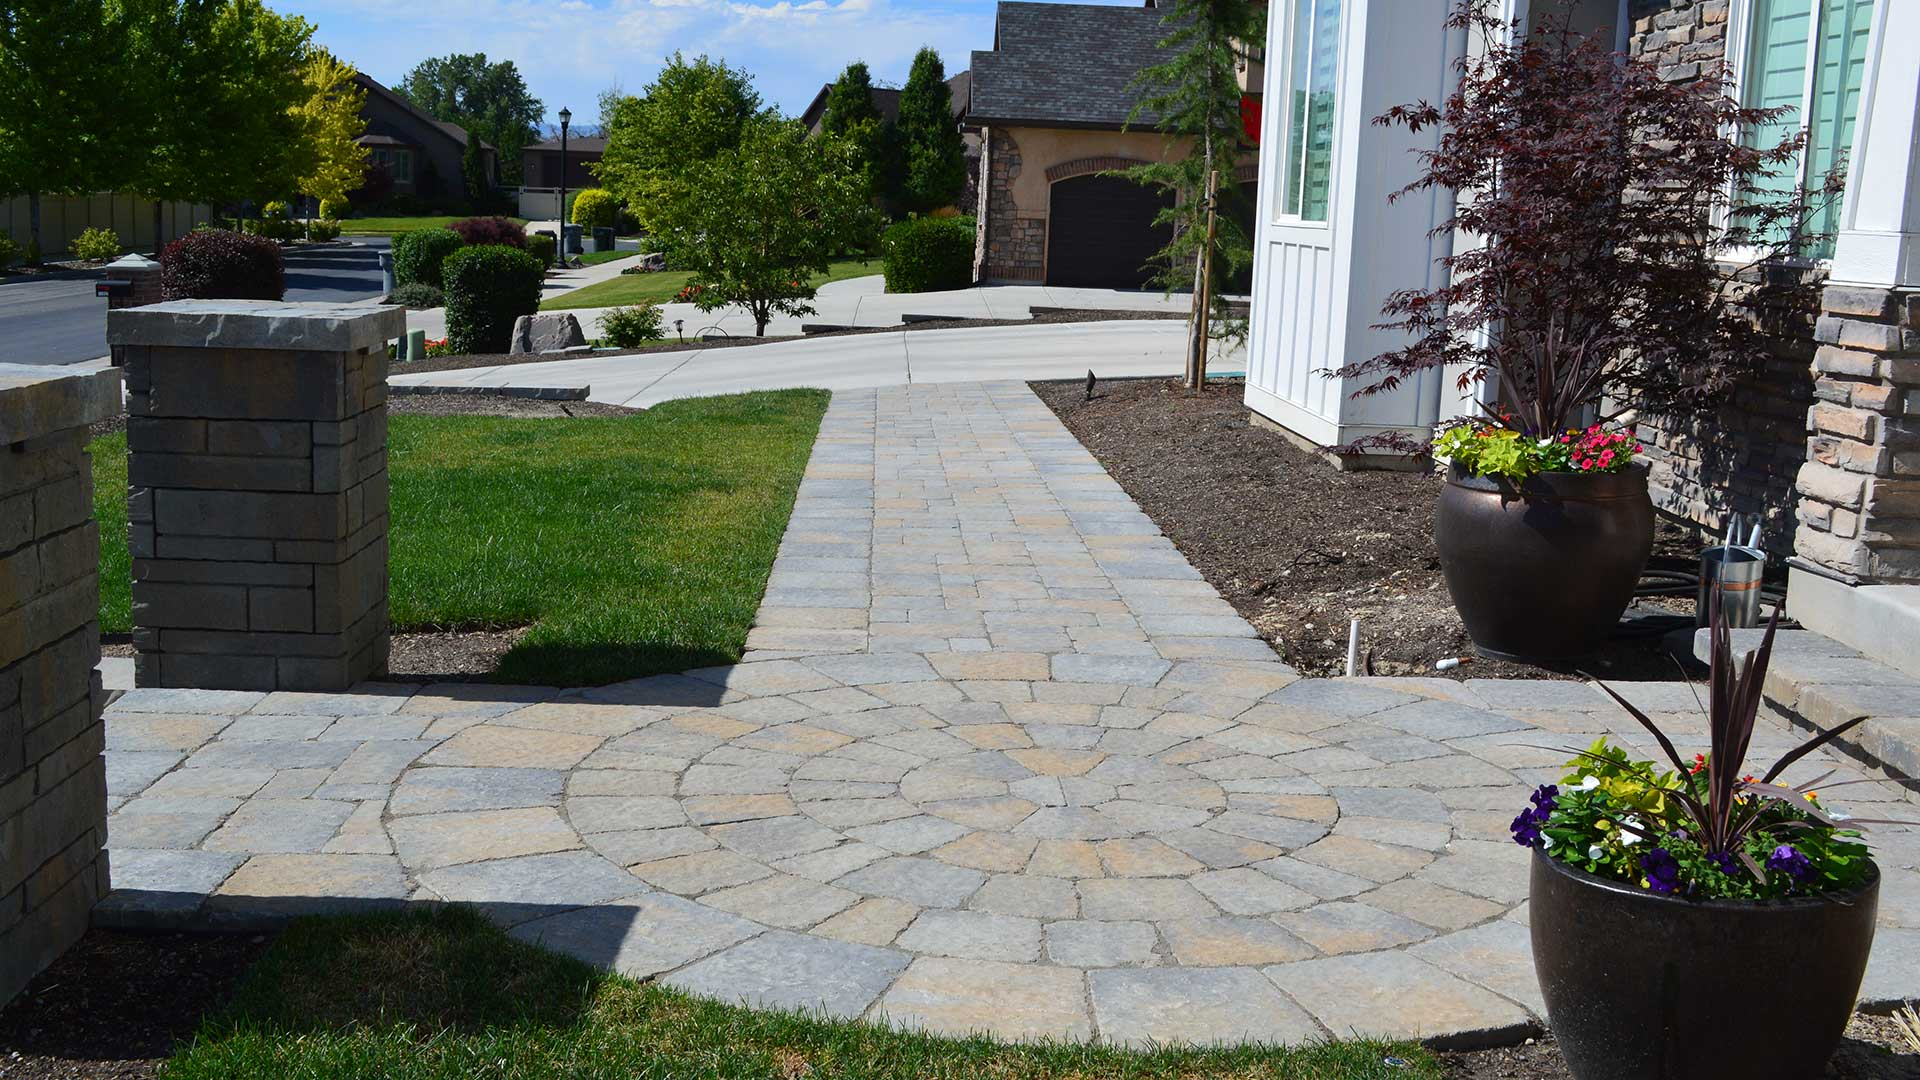 A new patio and walkway recently designed and installed by our professionals at a home in South Jordan.